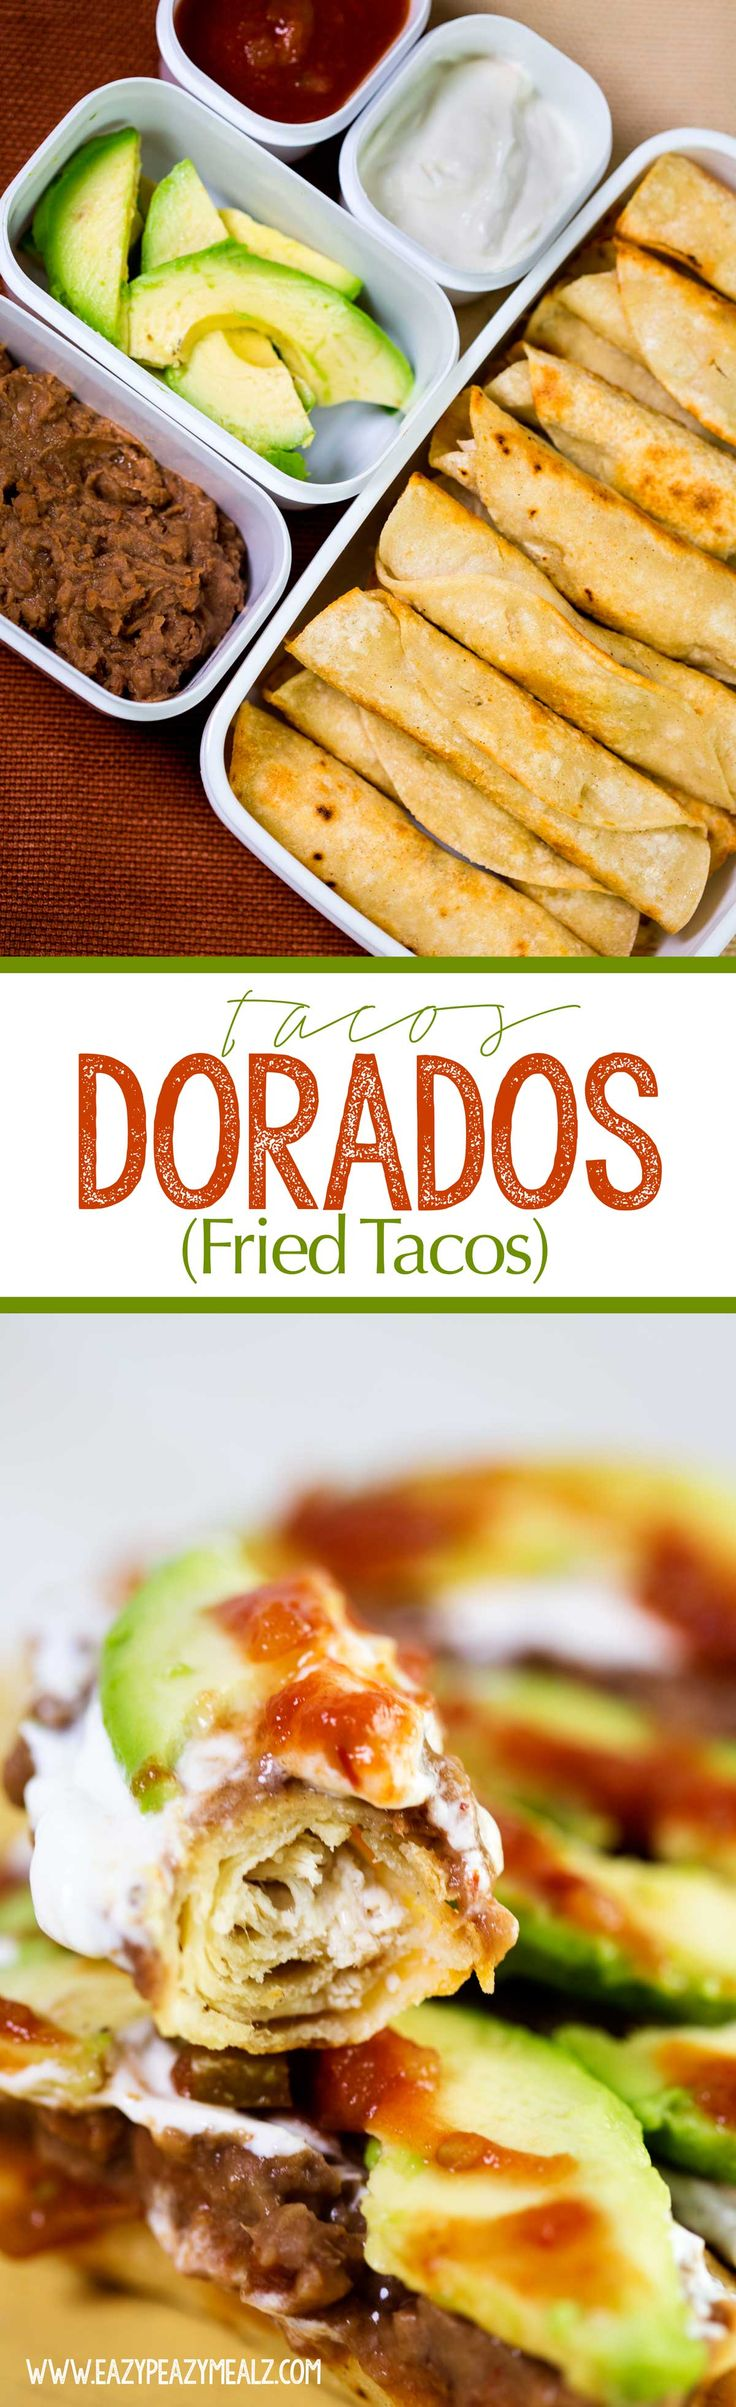 Tacos Dorados (Fried Tacos) are a great lunch solution for on the go. They are filled with tender chicken and cheese, then fried, and topped with all your favorites. #fastenngo #ad #Pmedia - Eazy Peazy Mealz